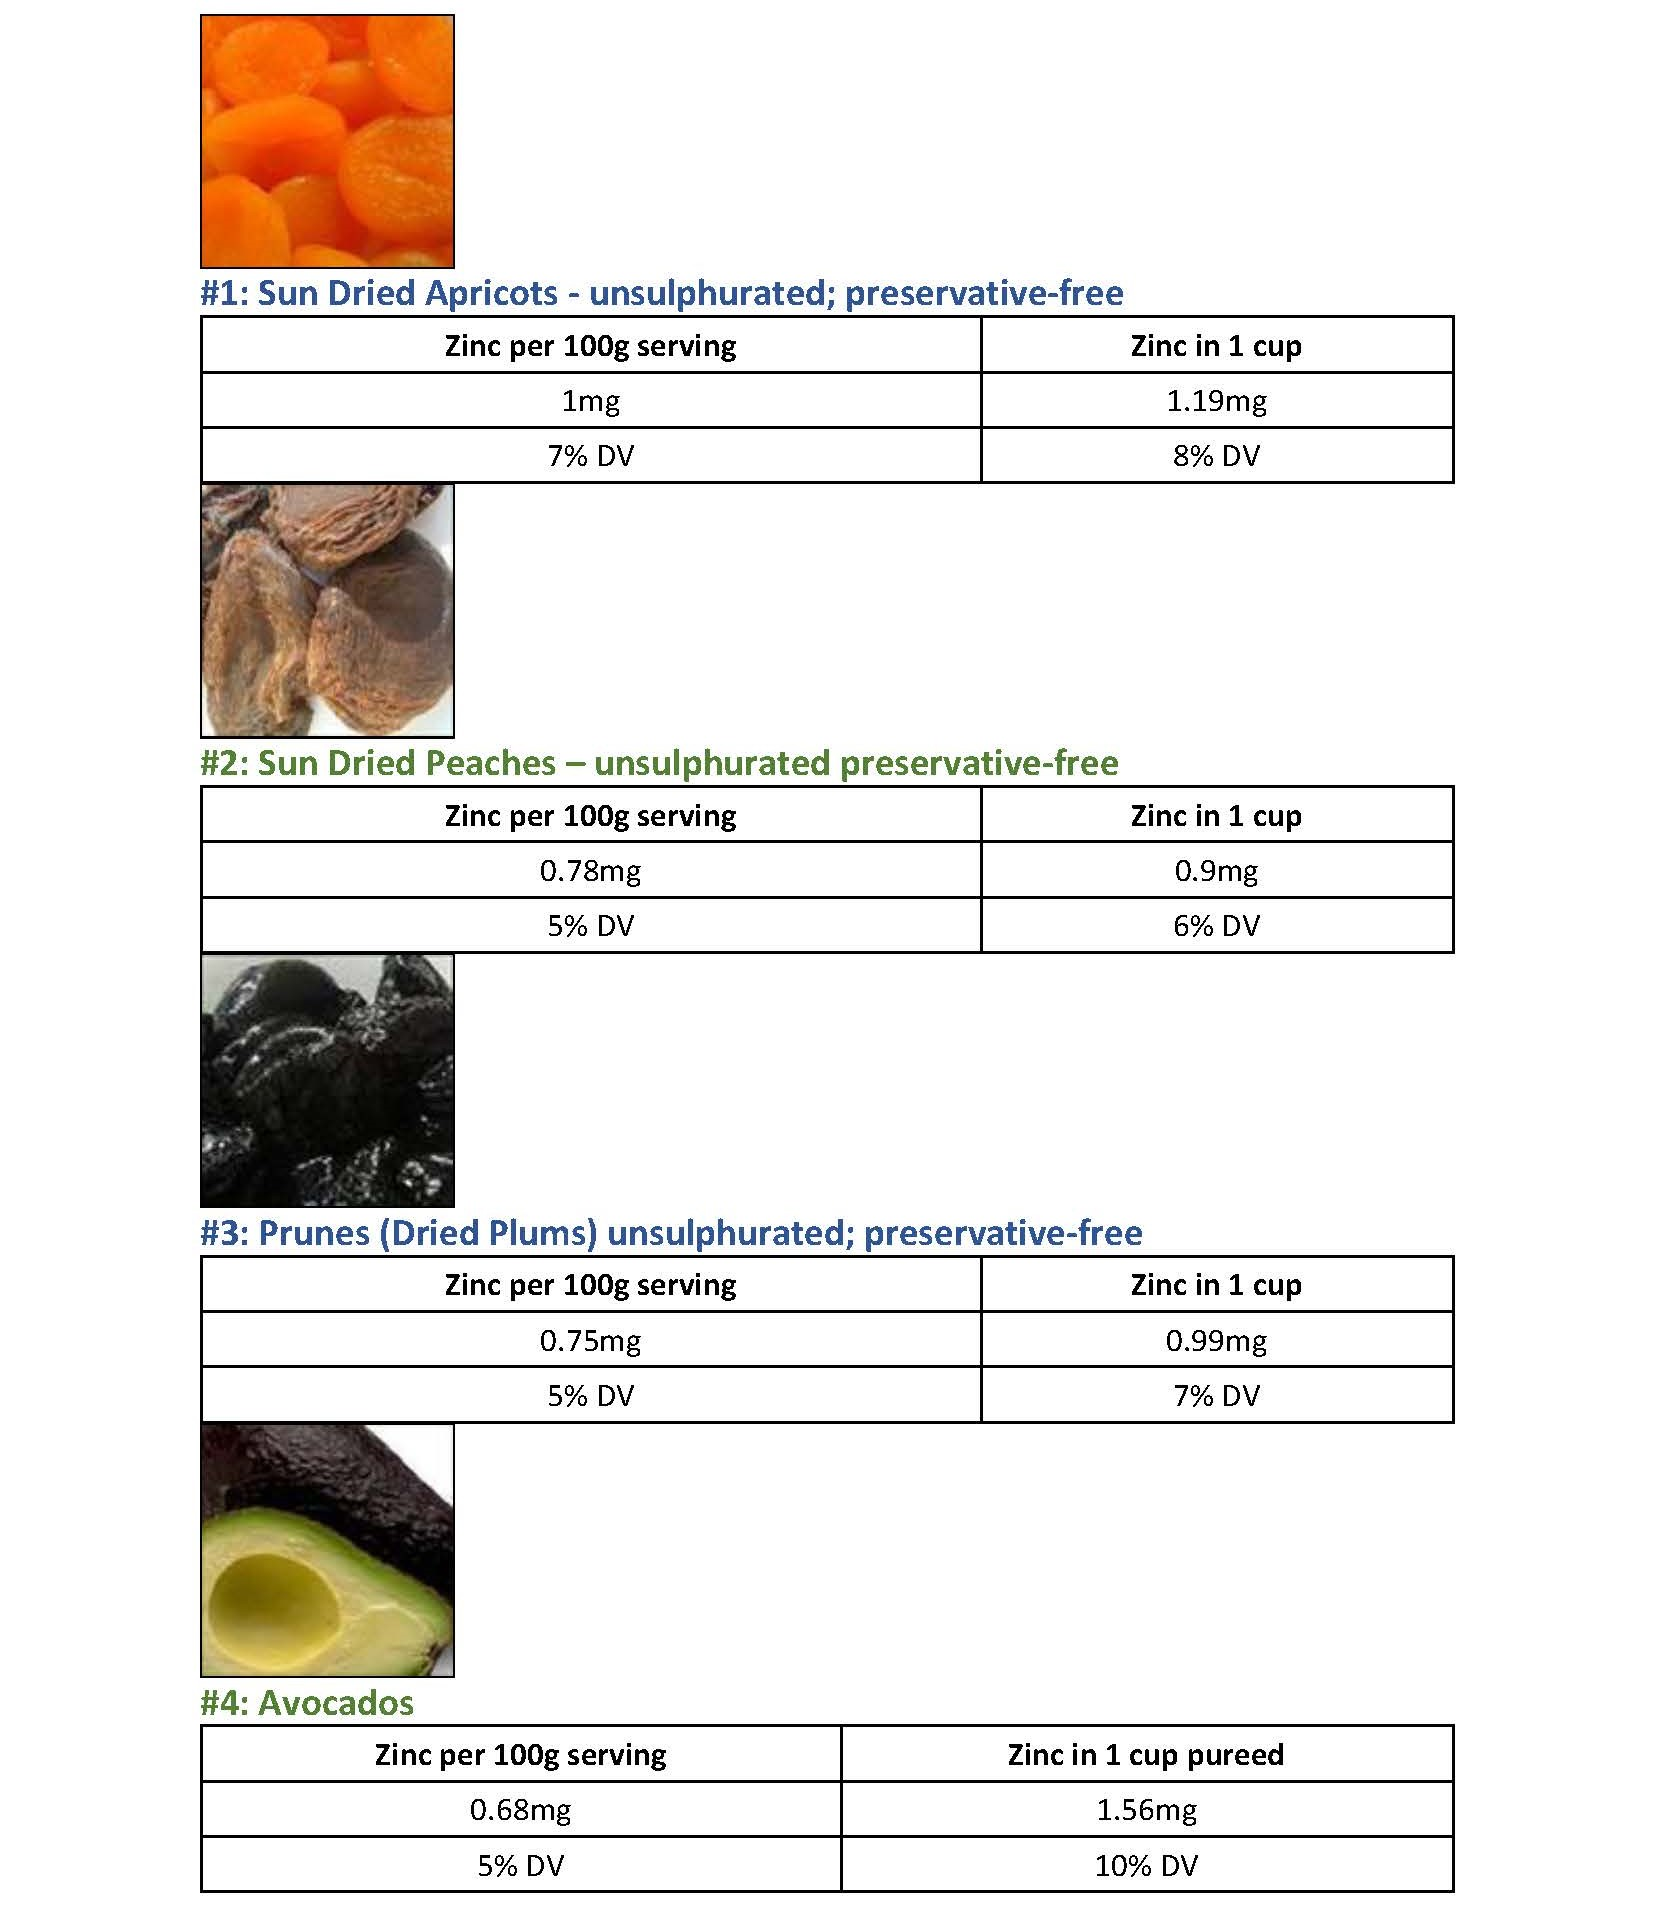 Natural Sources - Zinc in Fruit - Table 2 page 1